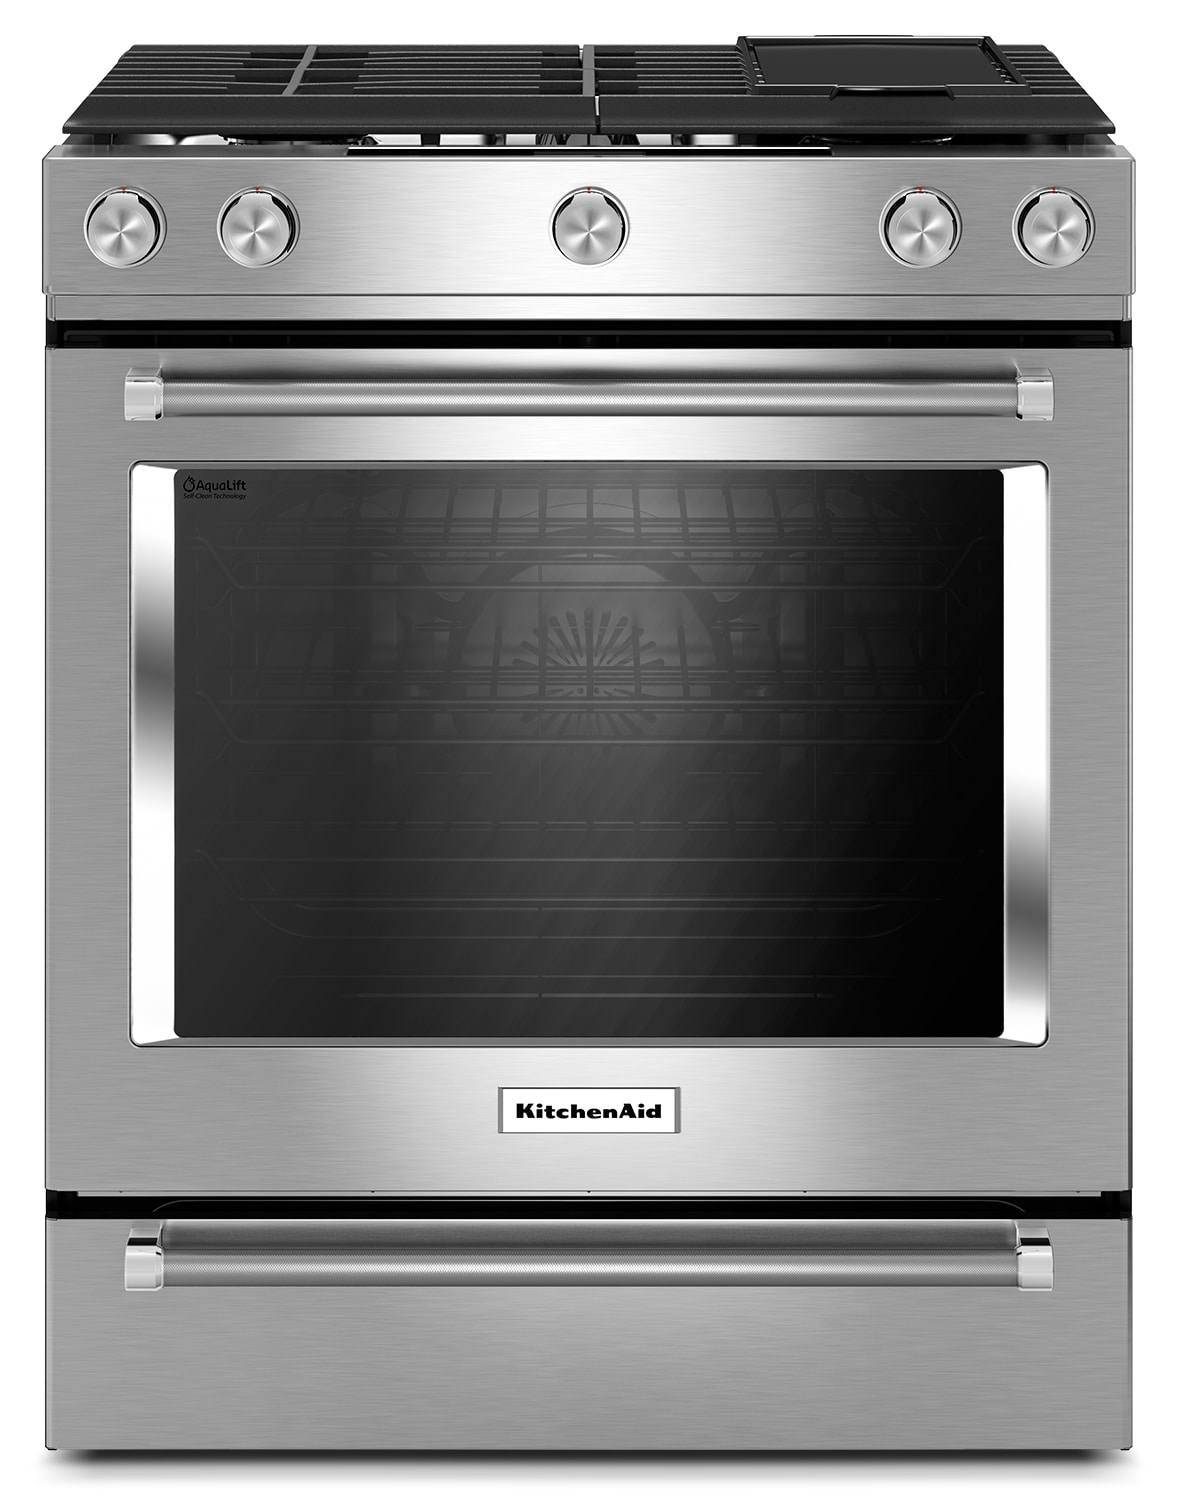 Cooking Products - KitchenAid Stainless Steel Slide-In Gas Convection Range (6.5 Cu. Ft.) - KSGB900ESS